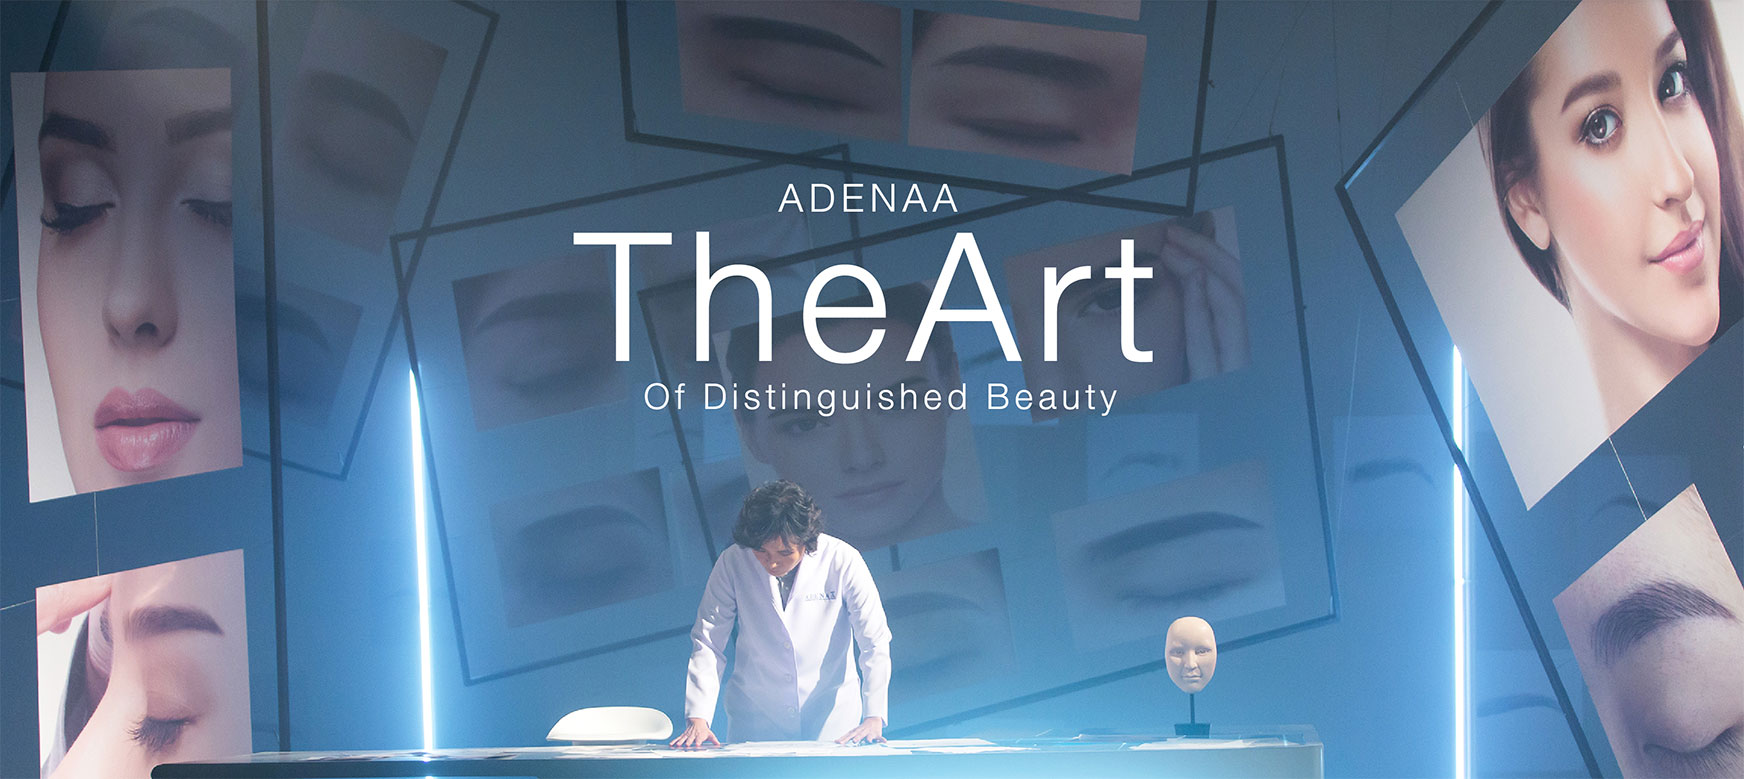 ADENAA The Art